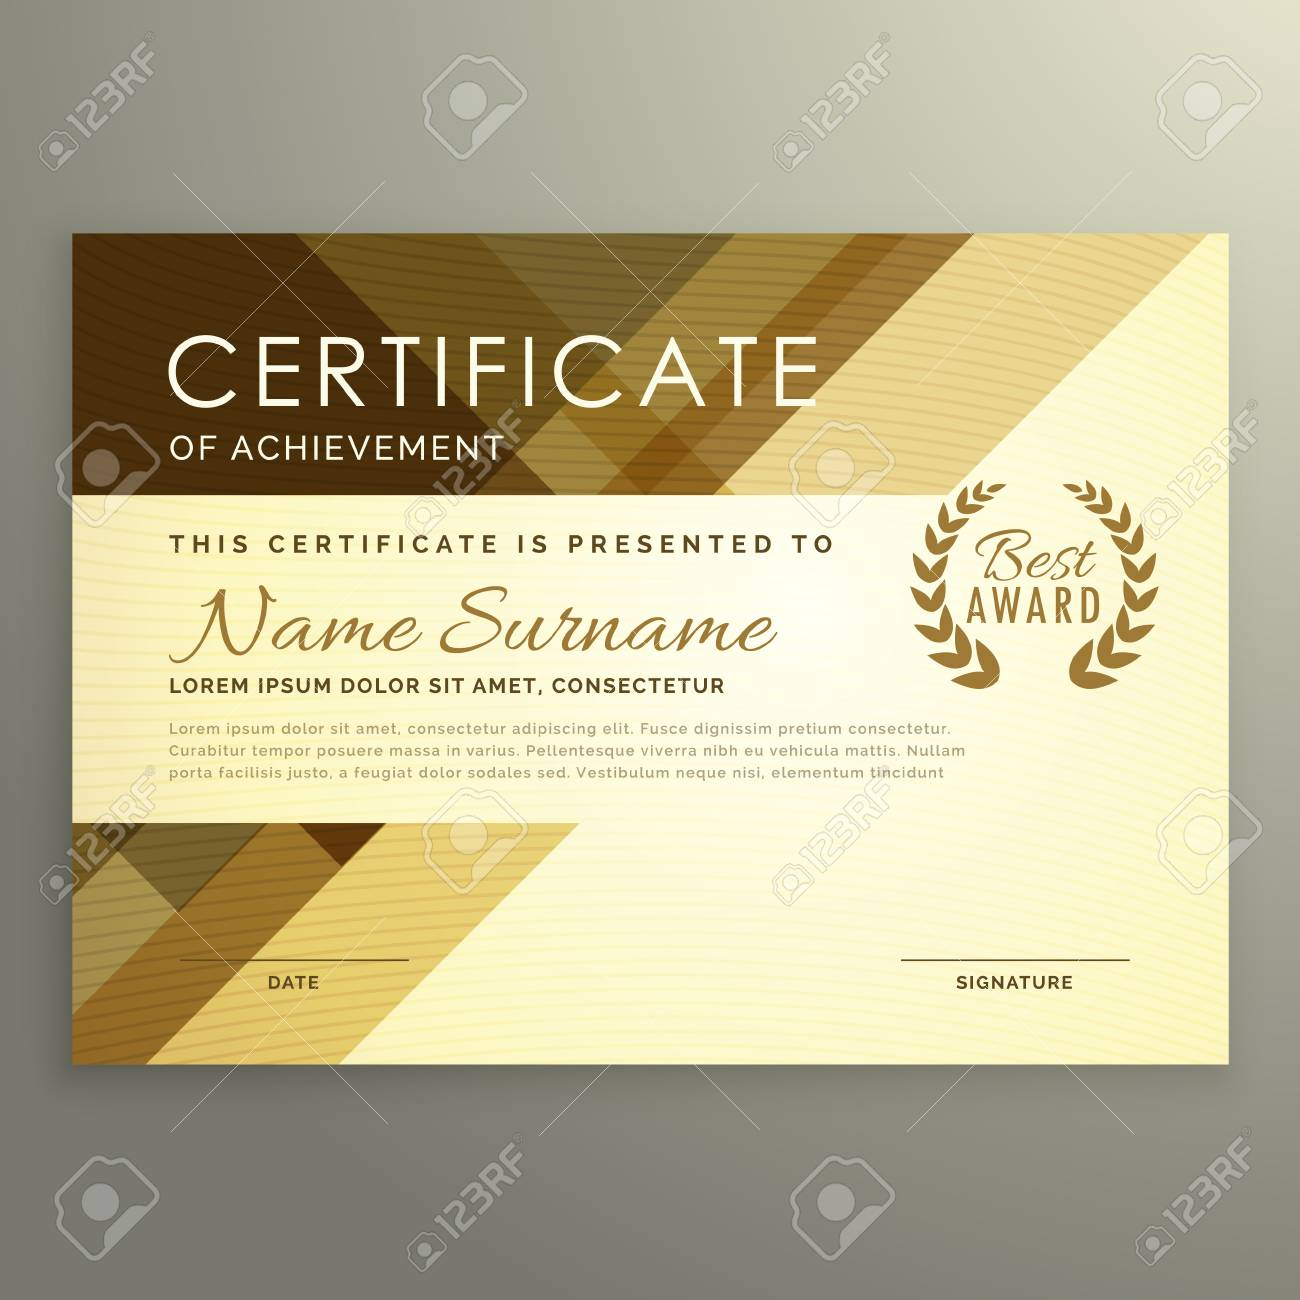 modern certificate design in premium style royalty free cliparts